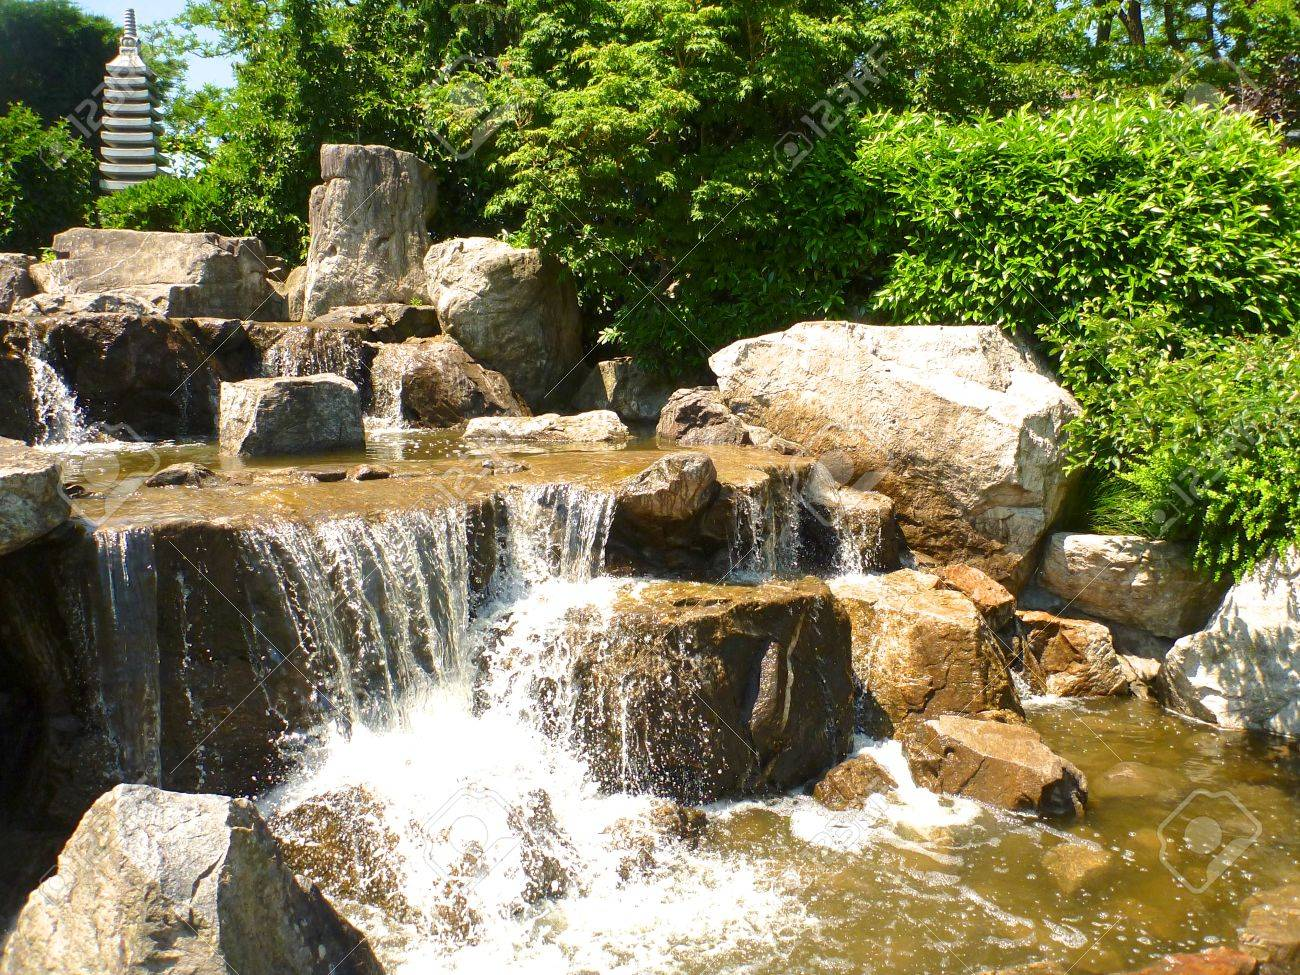 Cascades in the Japanese gardens of Freiburg Seepark, Germany - 21014940